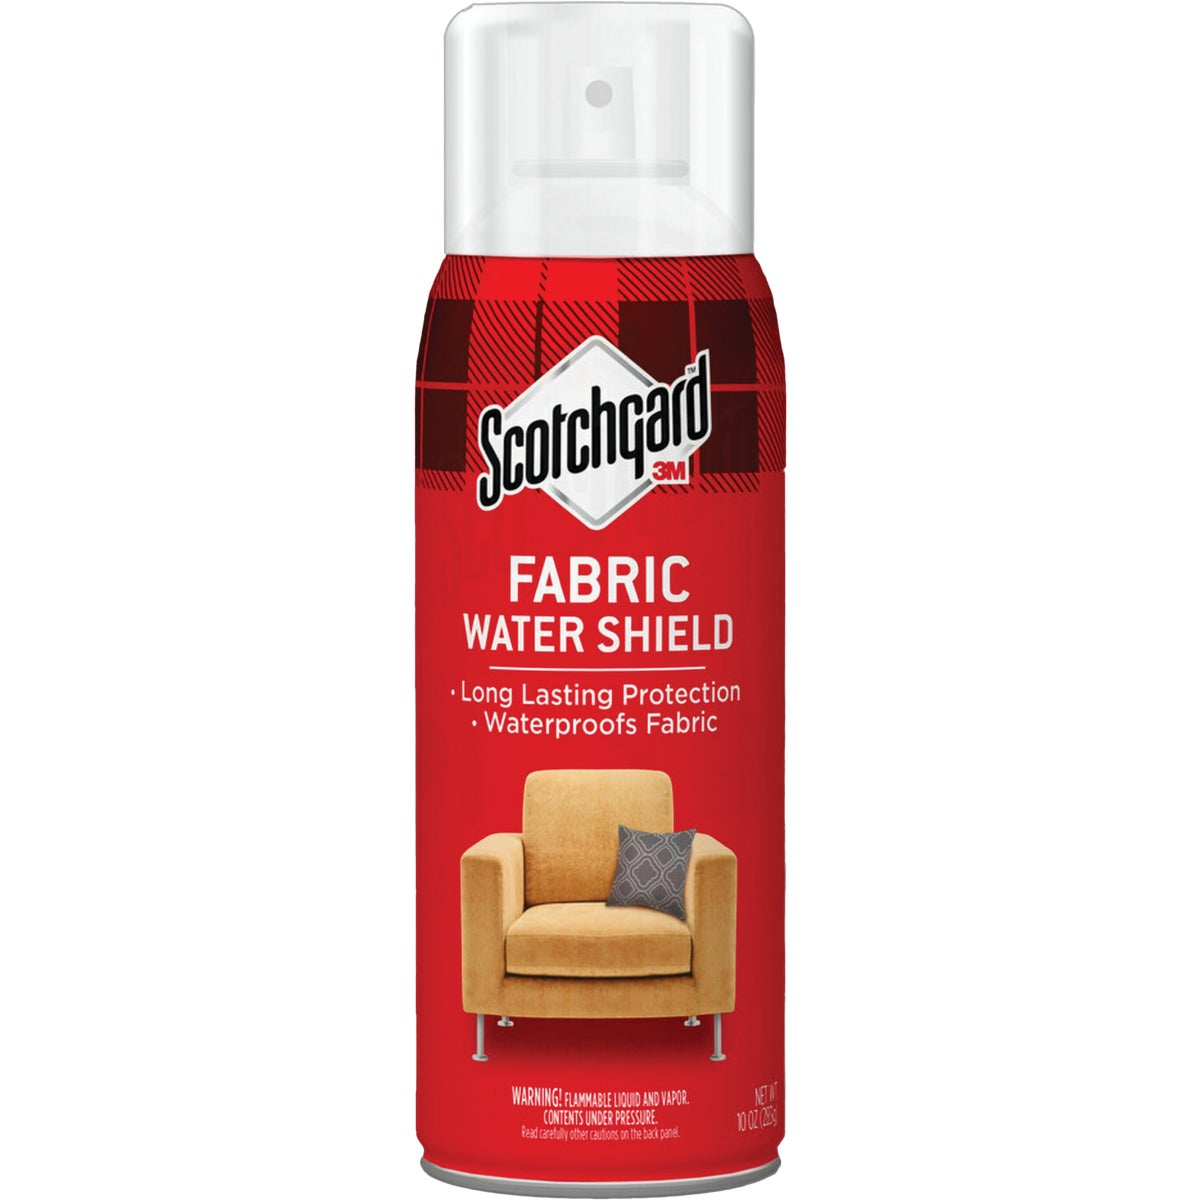 Carpet & Fabric Protectors